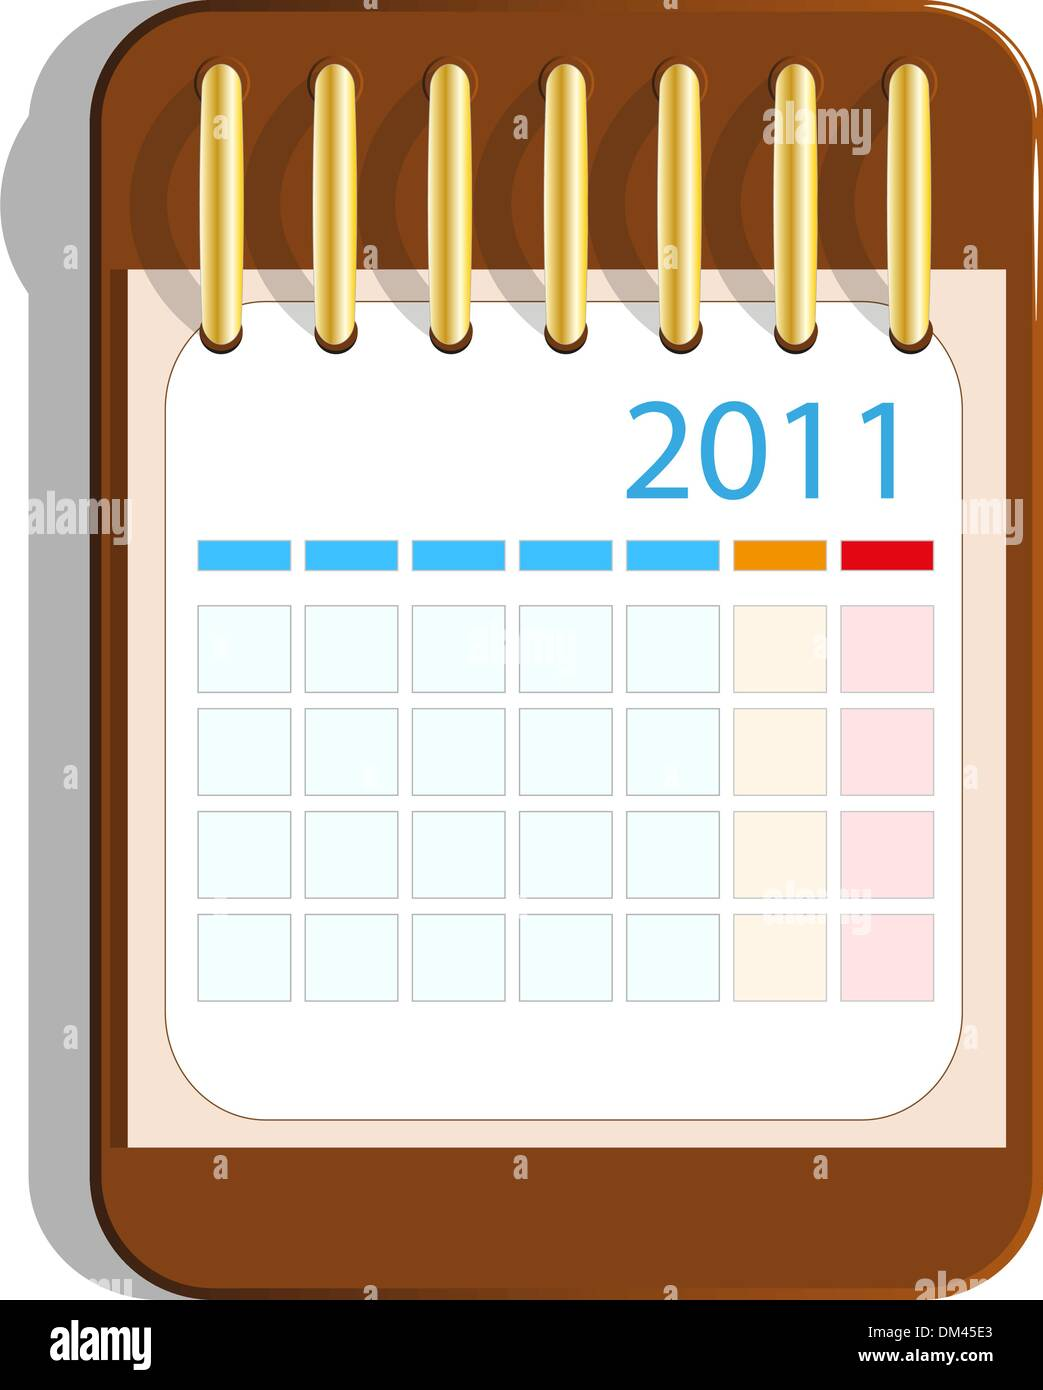 Calendar icon on the wooden base - Stock Image